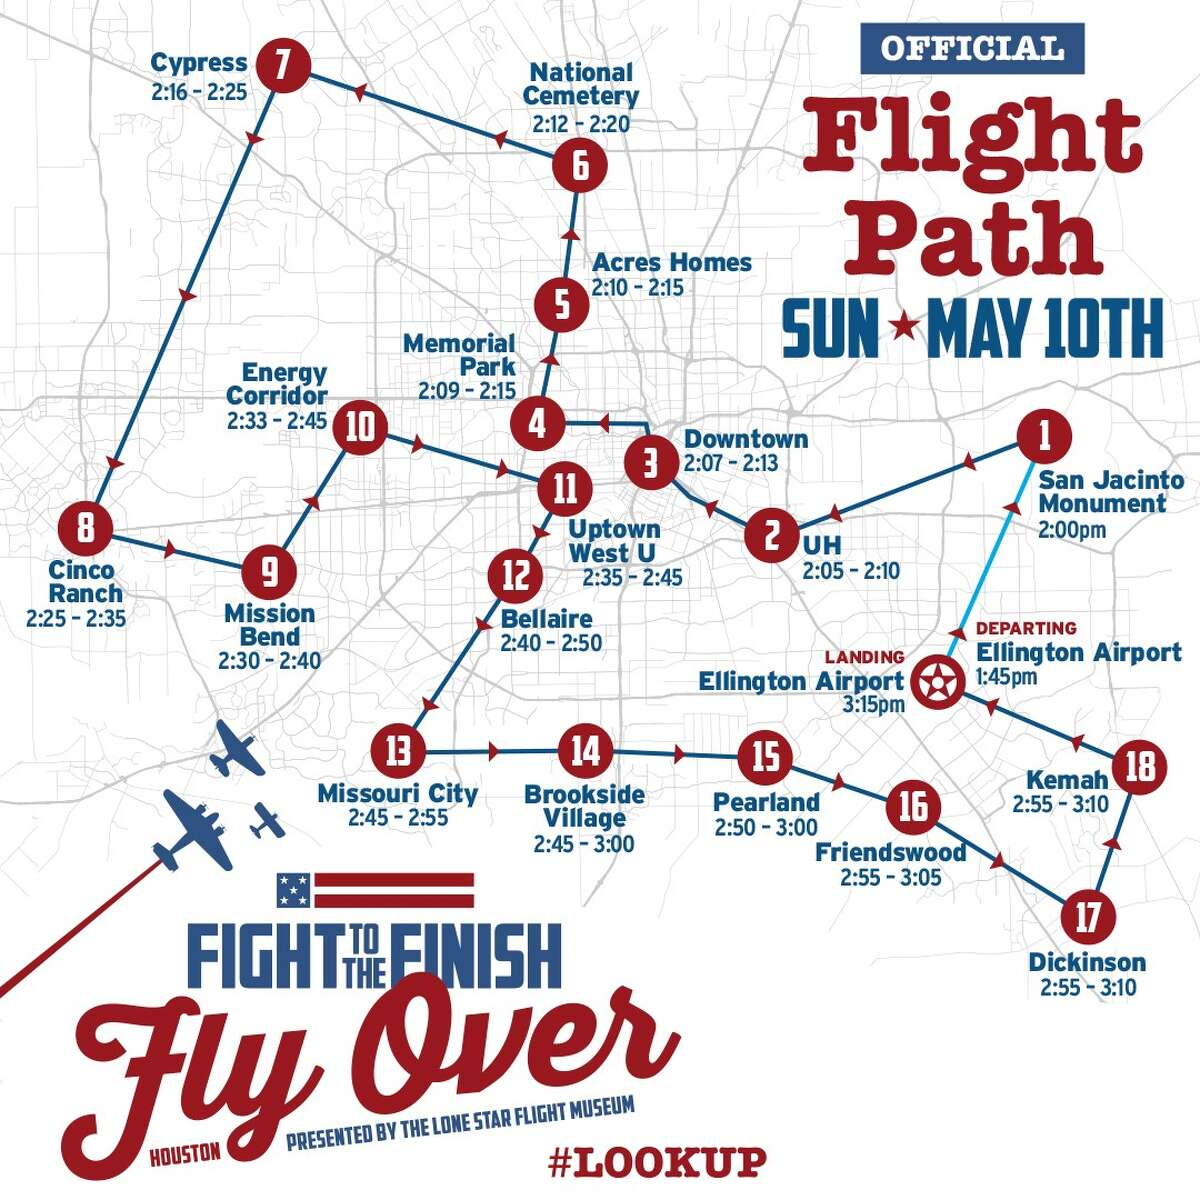 The flyover will take off at 2 p.m. Sunday from Ellington Airport and fly 120 miles, for about one hour.  Cites such as Pasadena, Pearland, Friendswood, Dickinson, Kemah, Cinco Ranch, and Spring-Cypress, among others, will have a front row seat to the flyover.